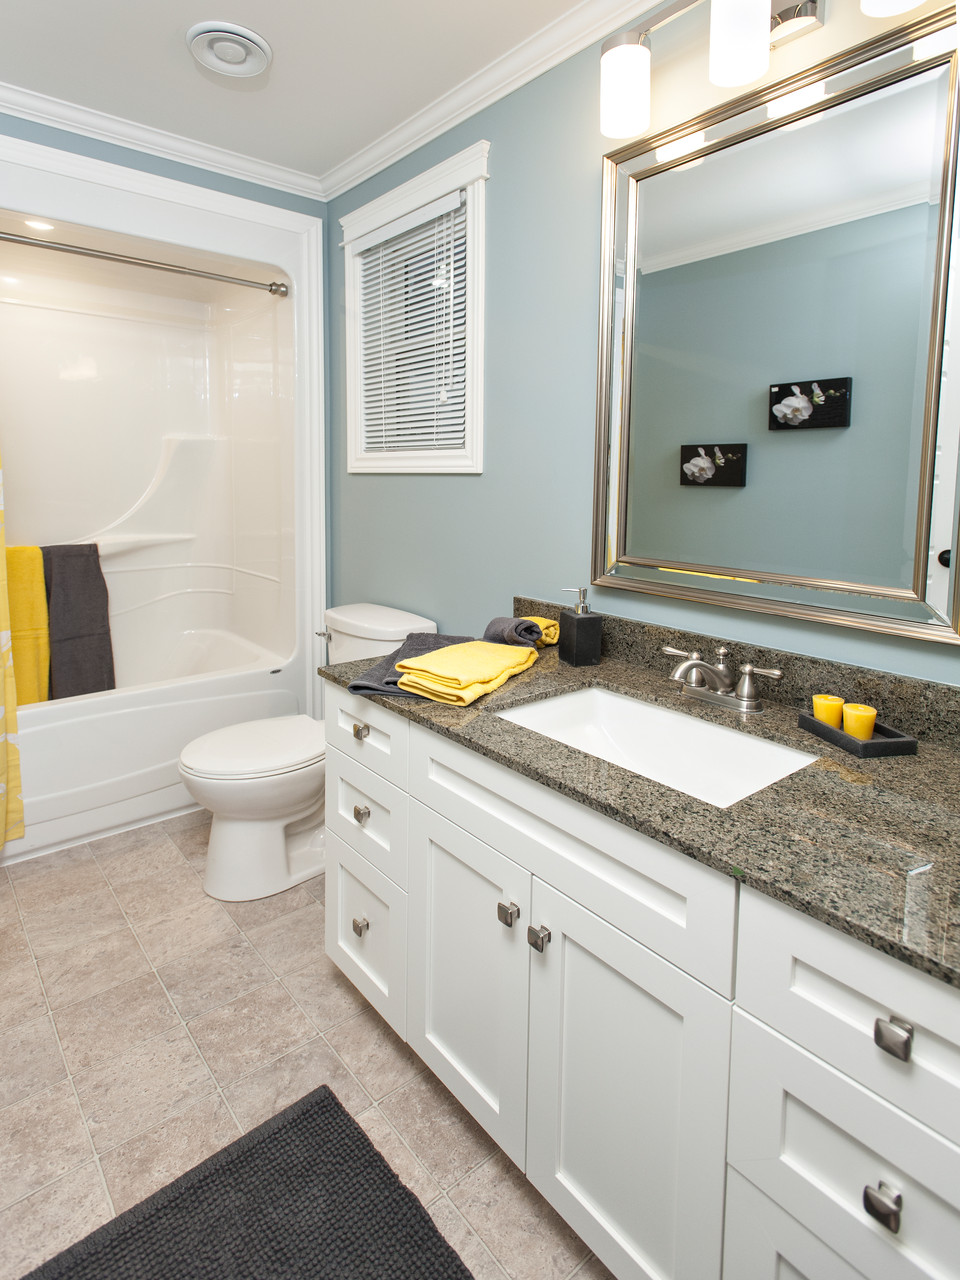 All bathroom vanities are granite solid surface counter tops with under mount sinks